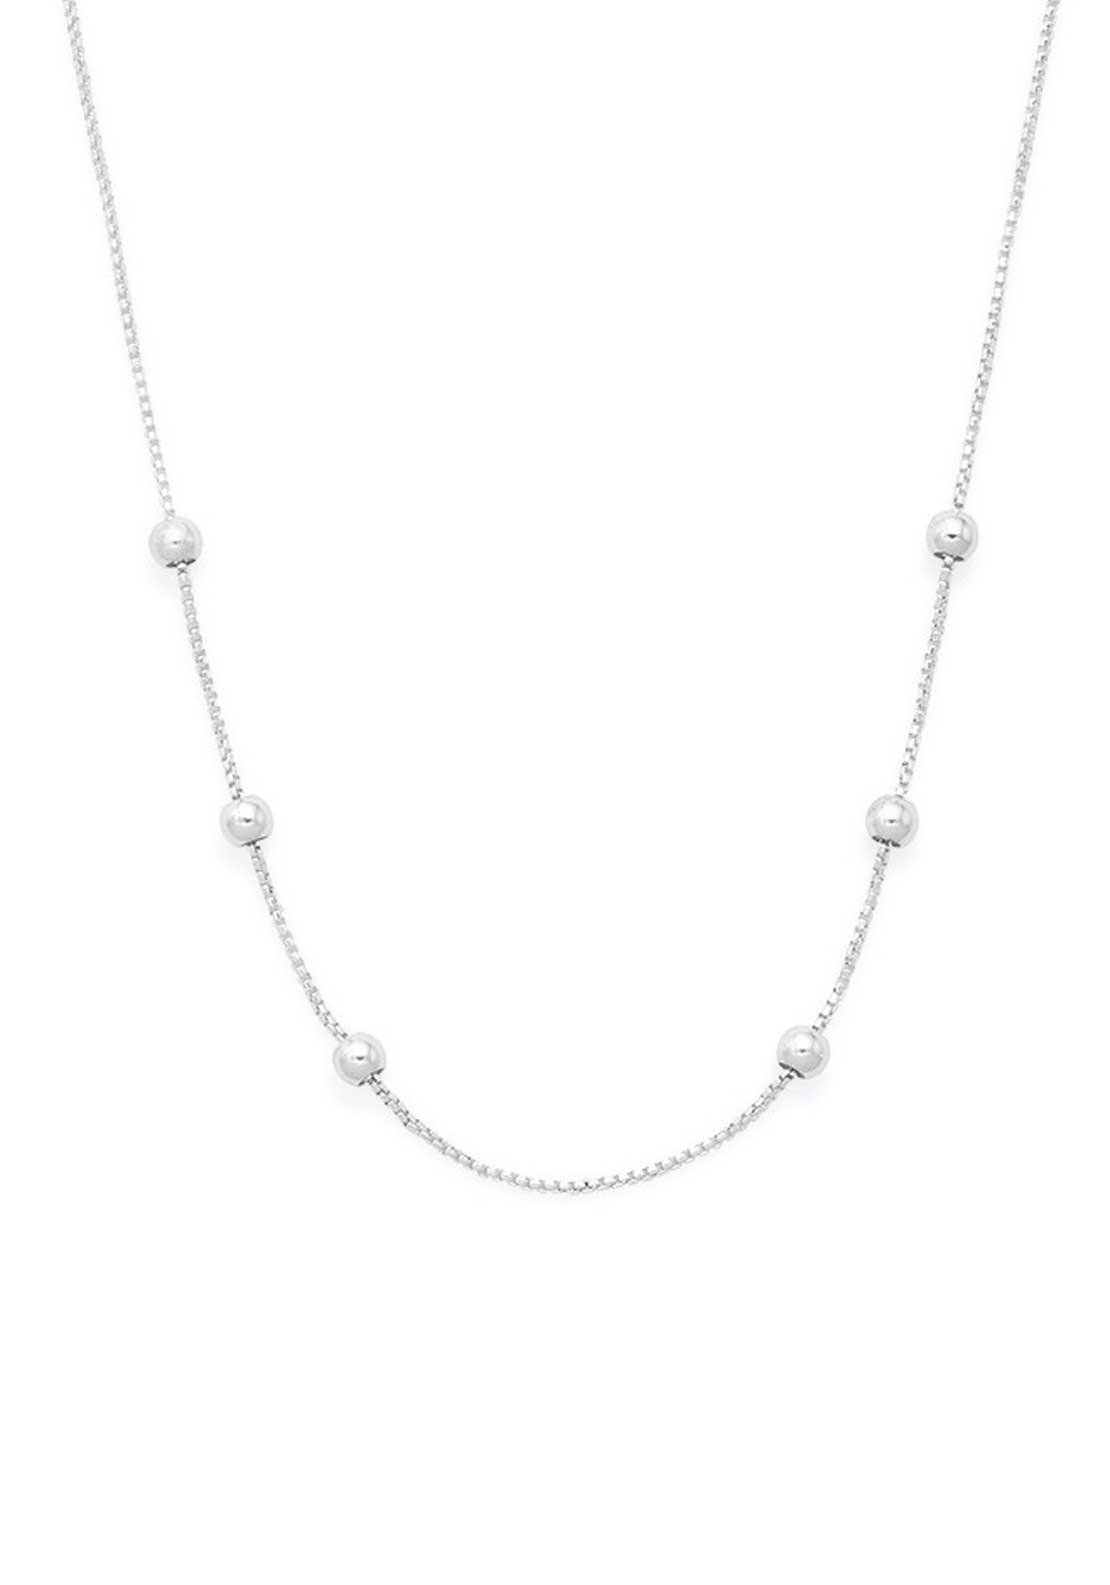 Alex and Ani Chain Station Necklace, Silver